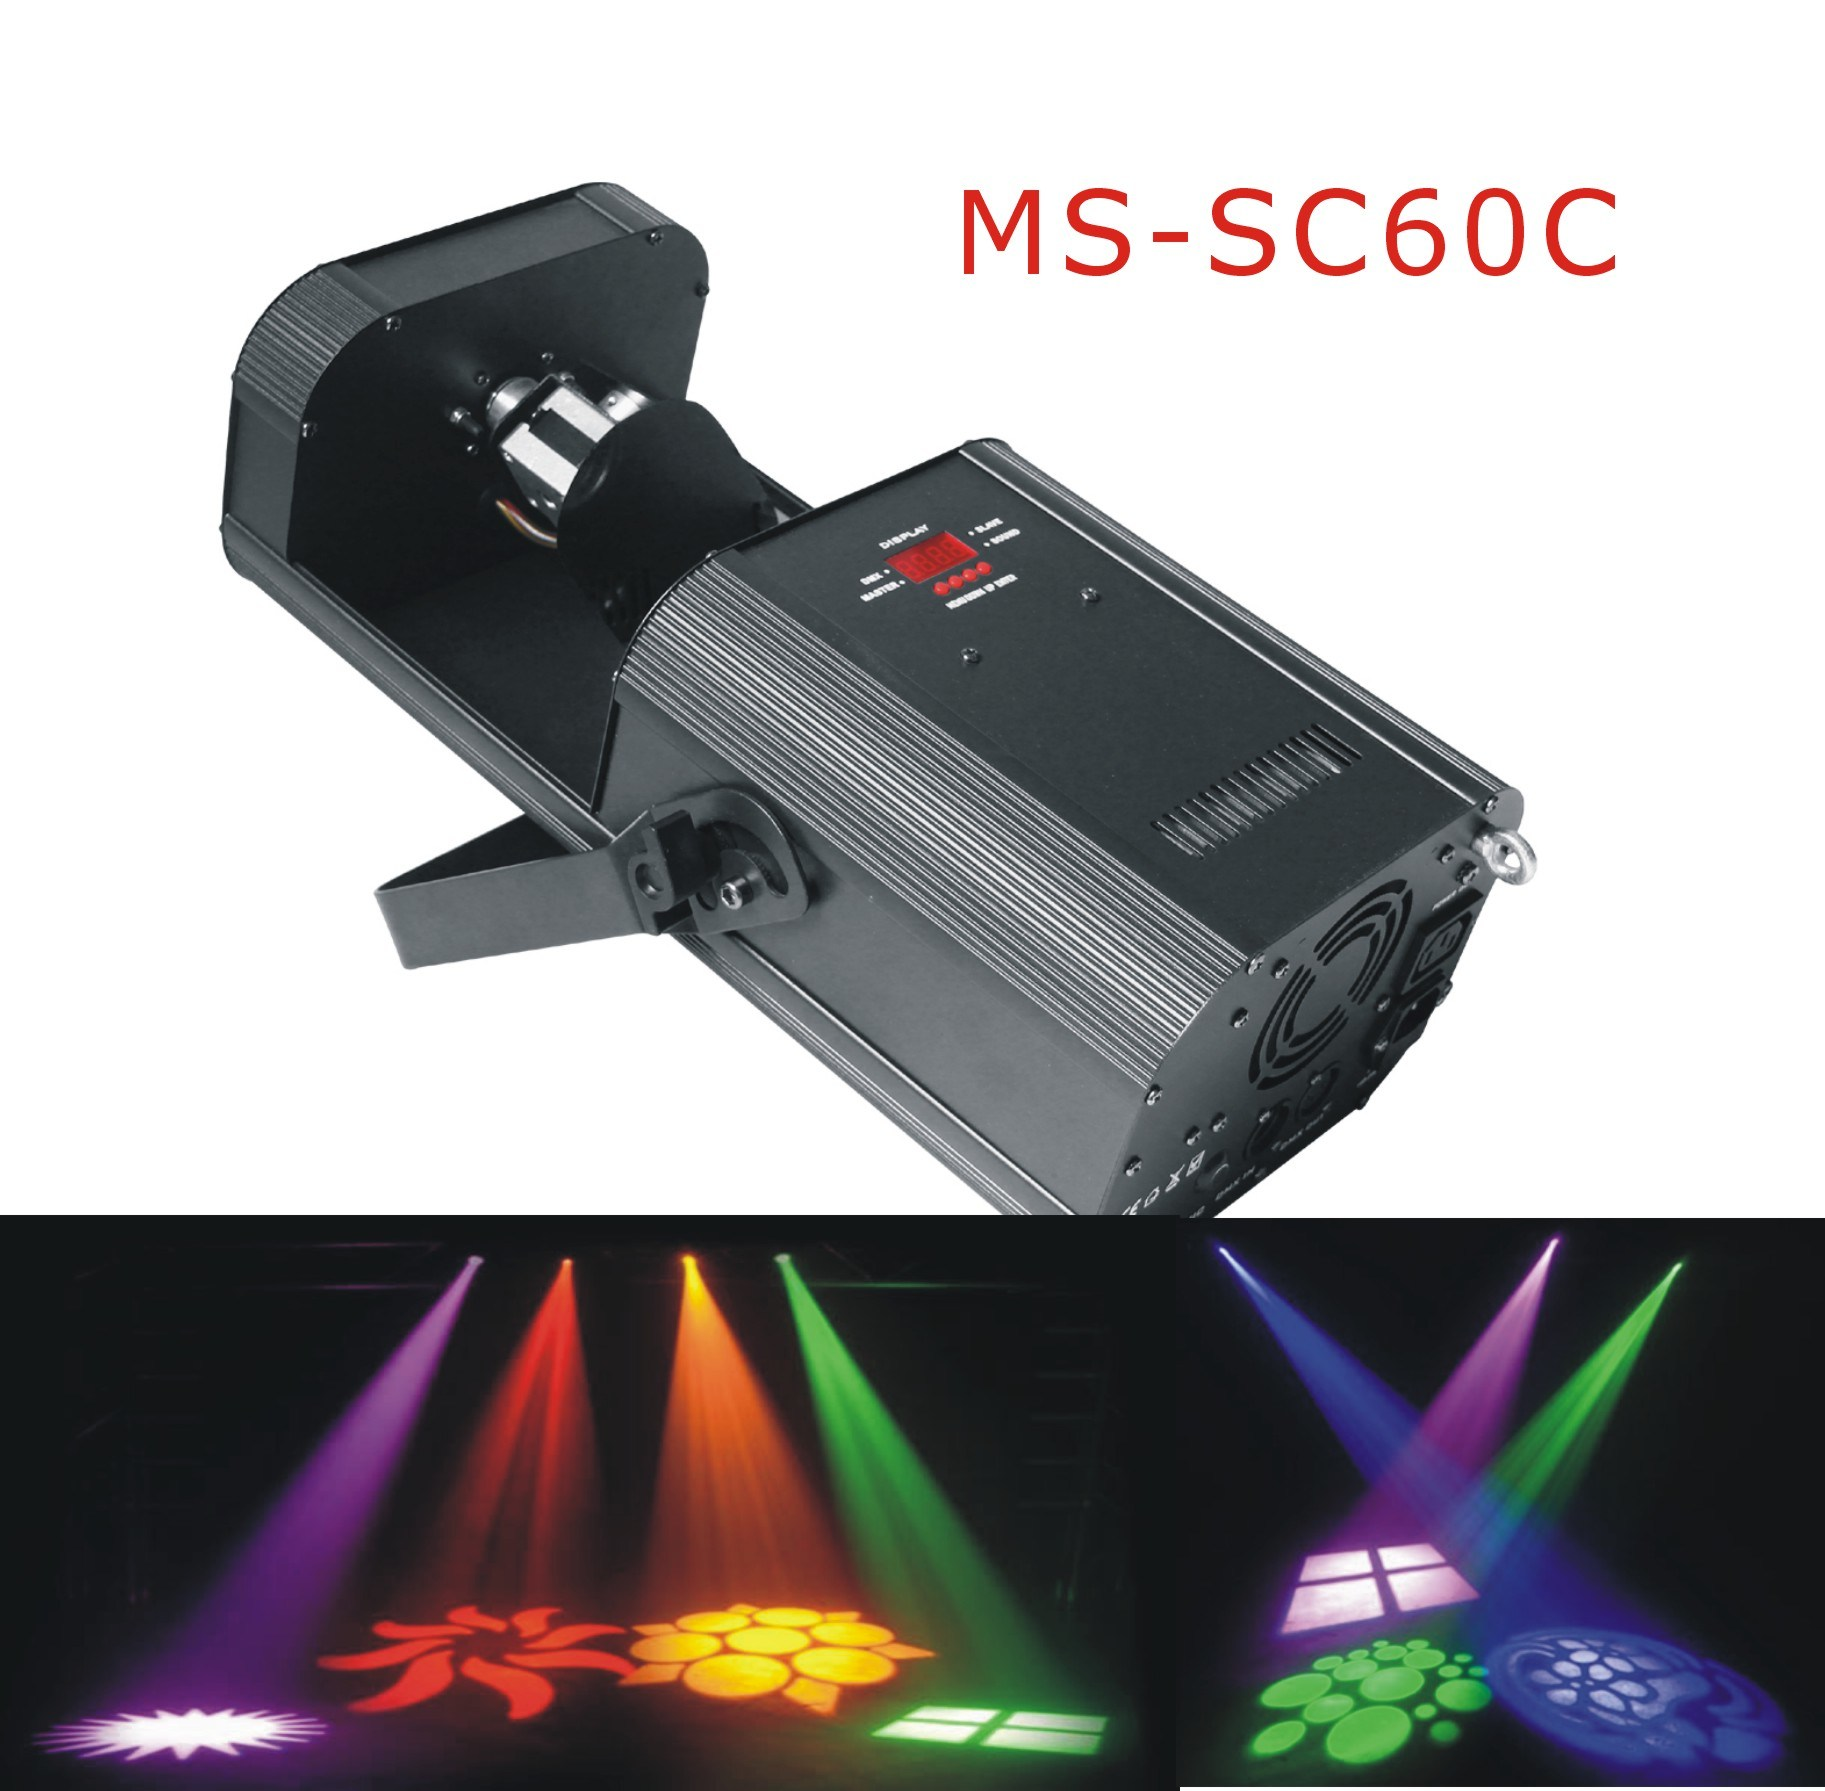 60W LED Scanner (MS-SC60C)